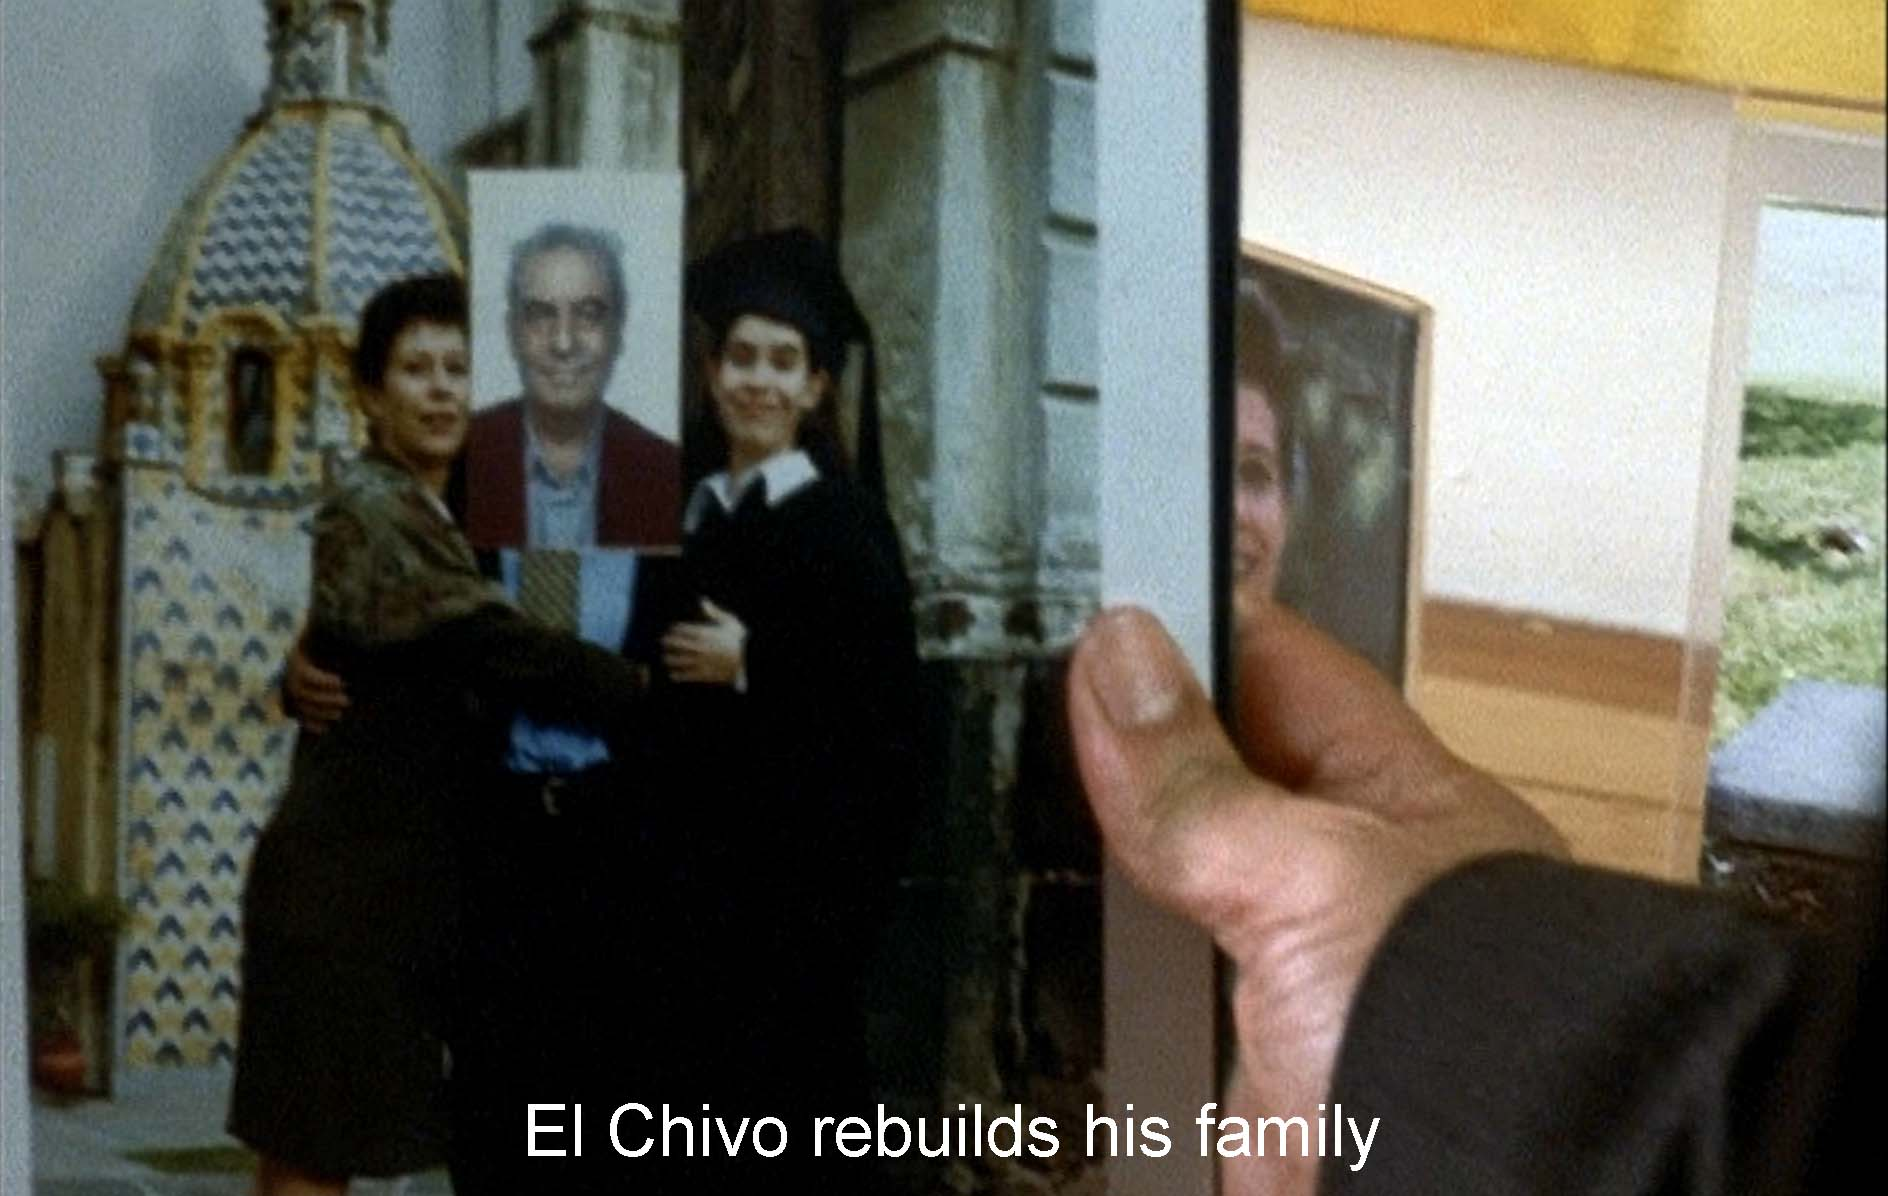 El Chivo rebuilds his family